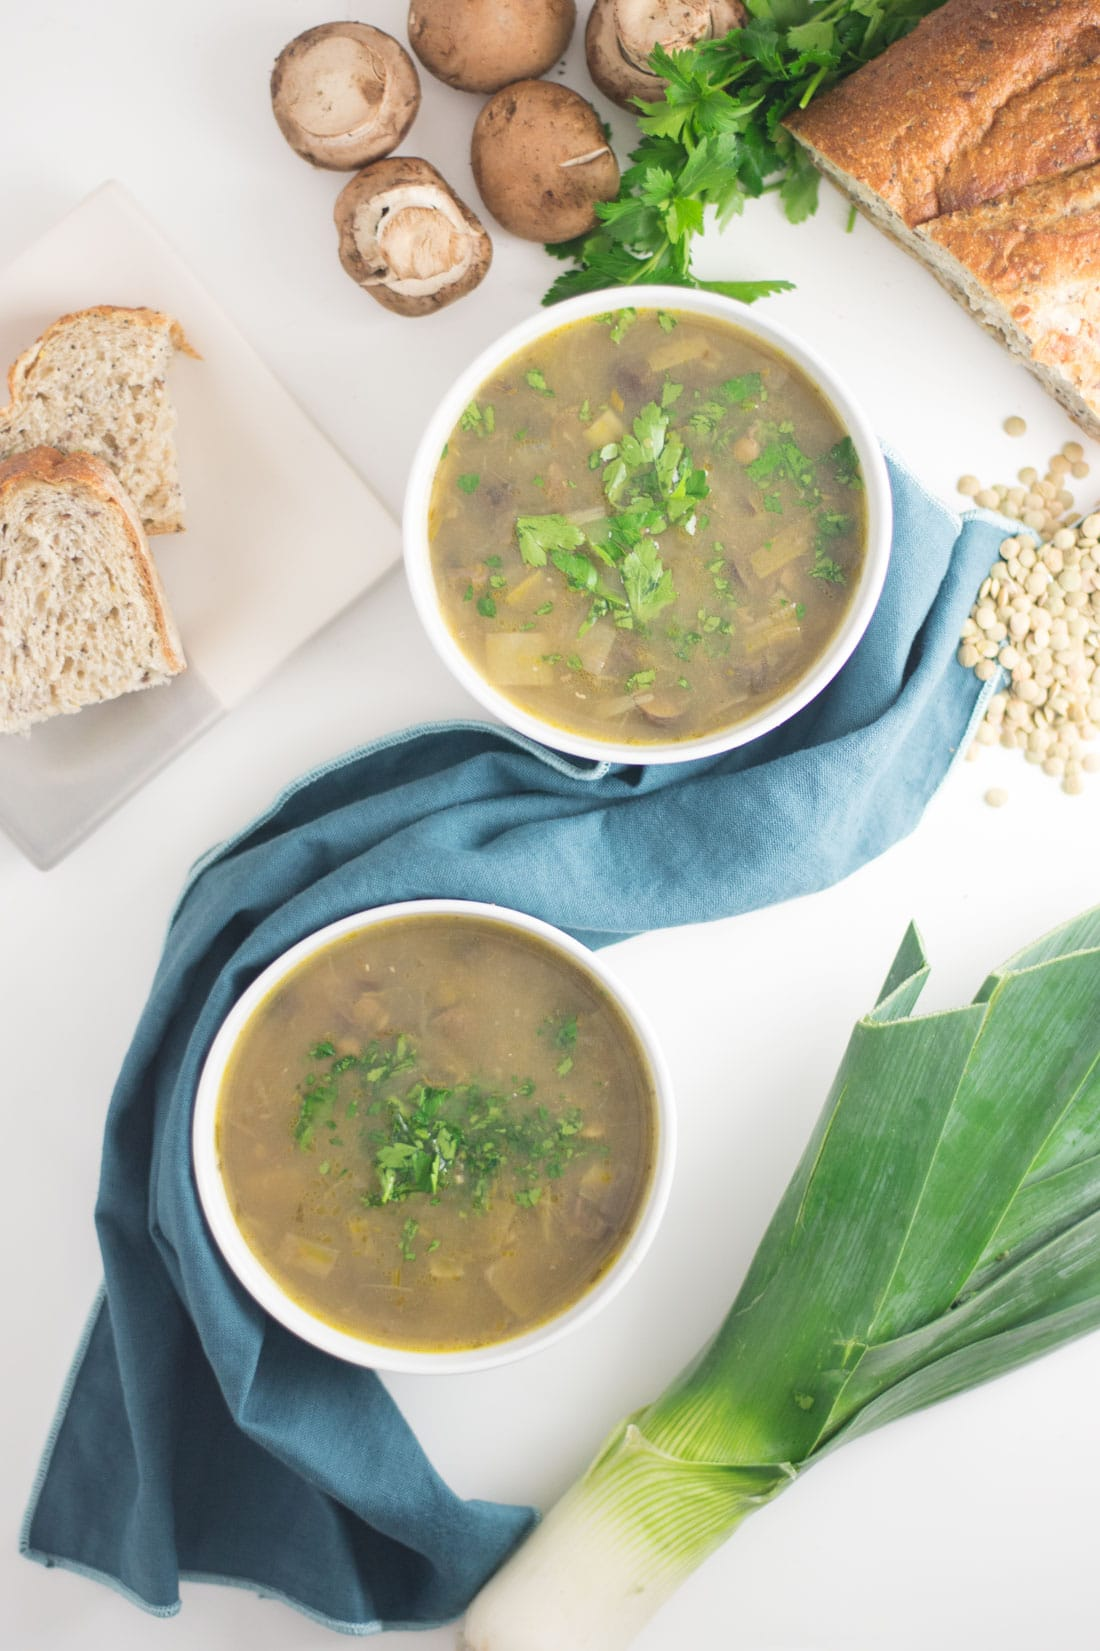 two bowls of vegan mushroom soup with bread, leeks, and mushrooms